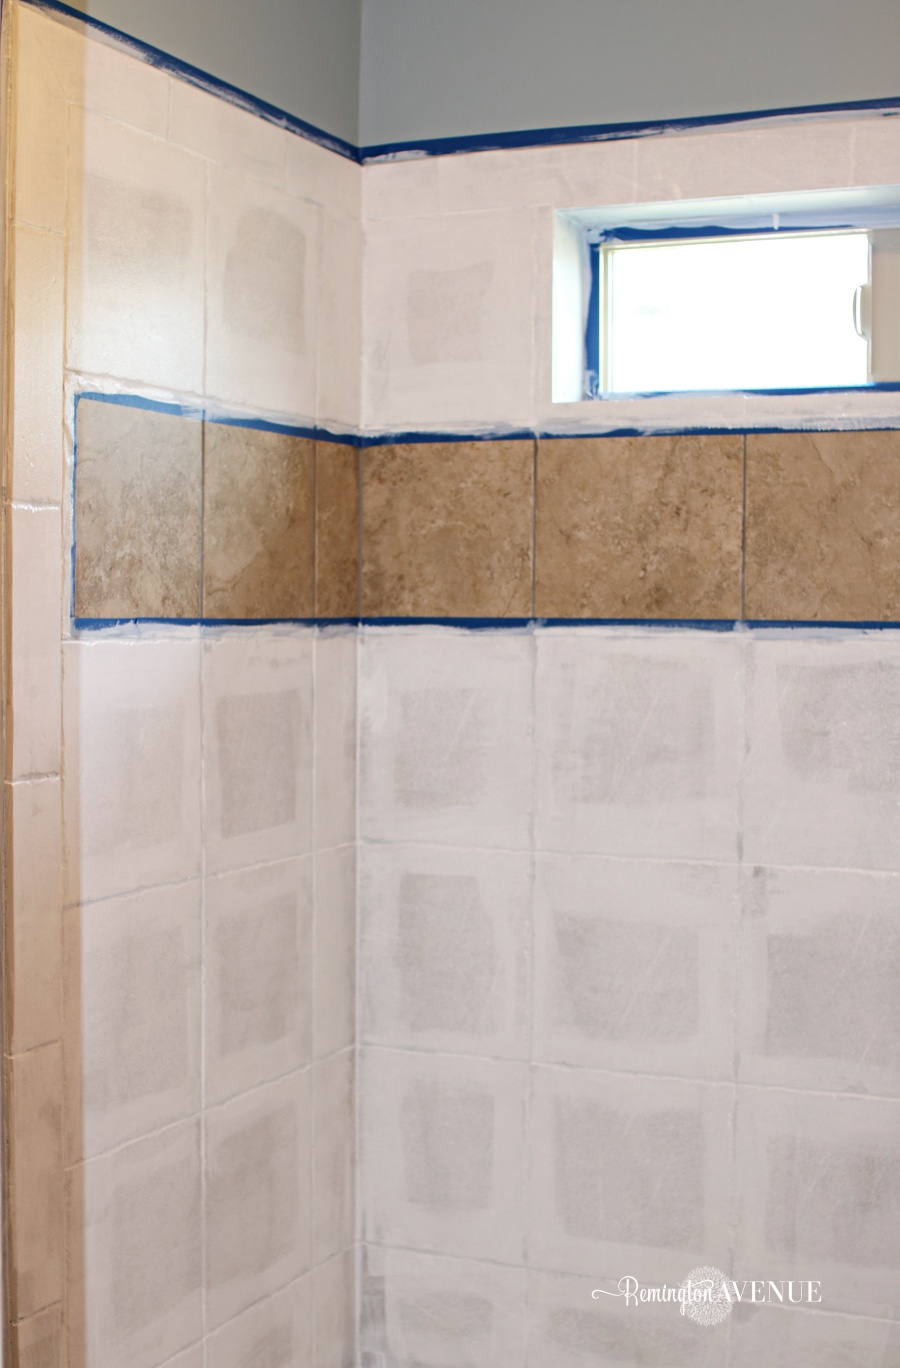 How to paint shower tile remington avenue then roll on 1 solid coat of primer on all the shower tiles i used a low profile synthetic roller brush just like the directions called for on the back of dailygadgetfo Image collections